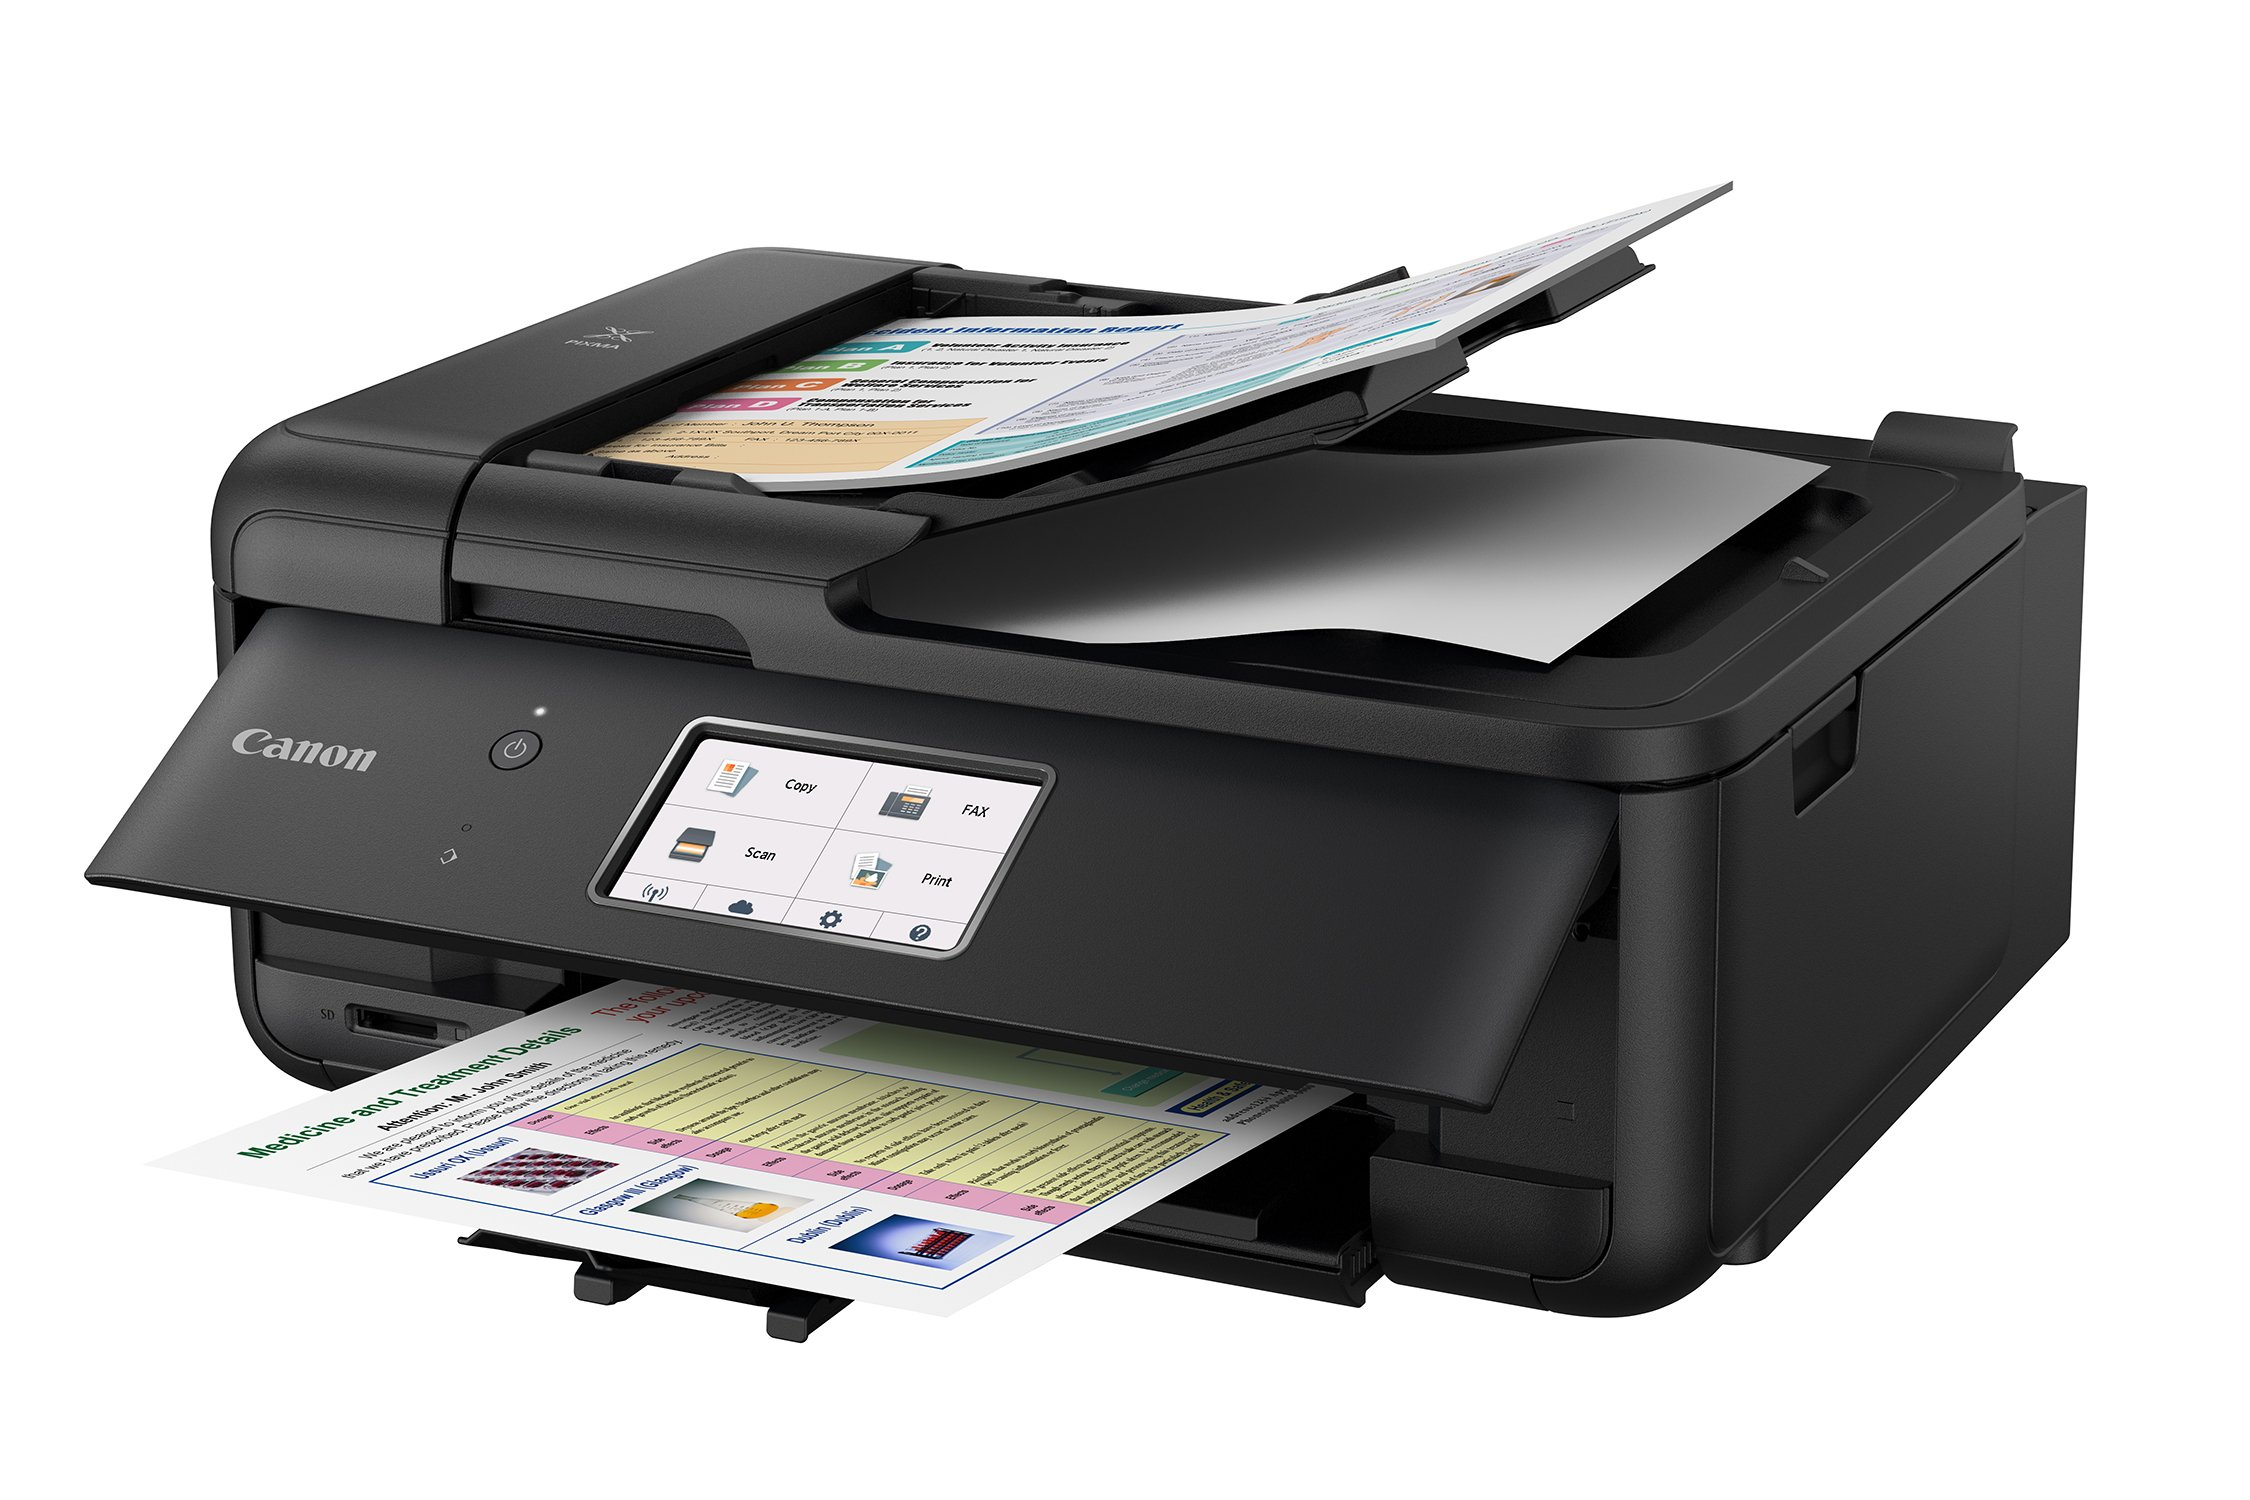 Canon PIXMA TR8520 Wireless All in One Printer | Mobile Printing | Photo and Document Printing, AirPrint(R) and Google Cloud Printing, Black by Canon (Image #3)